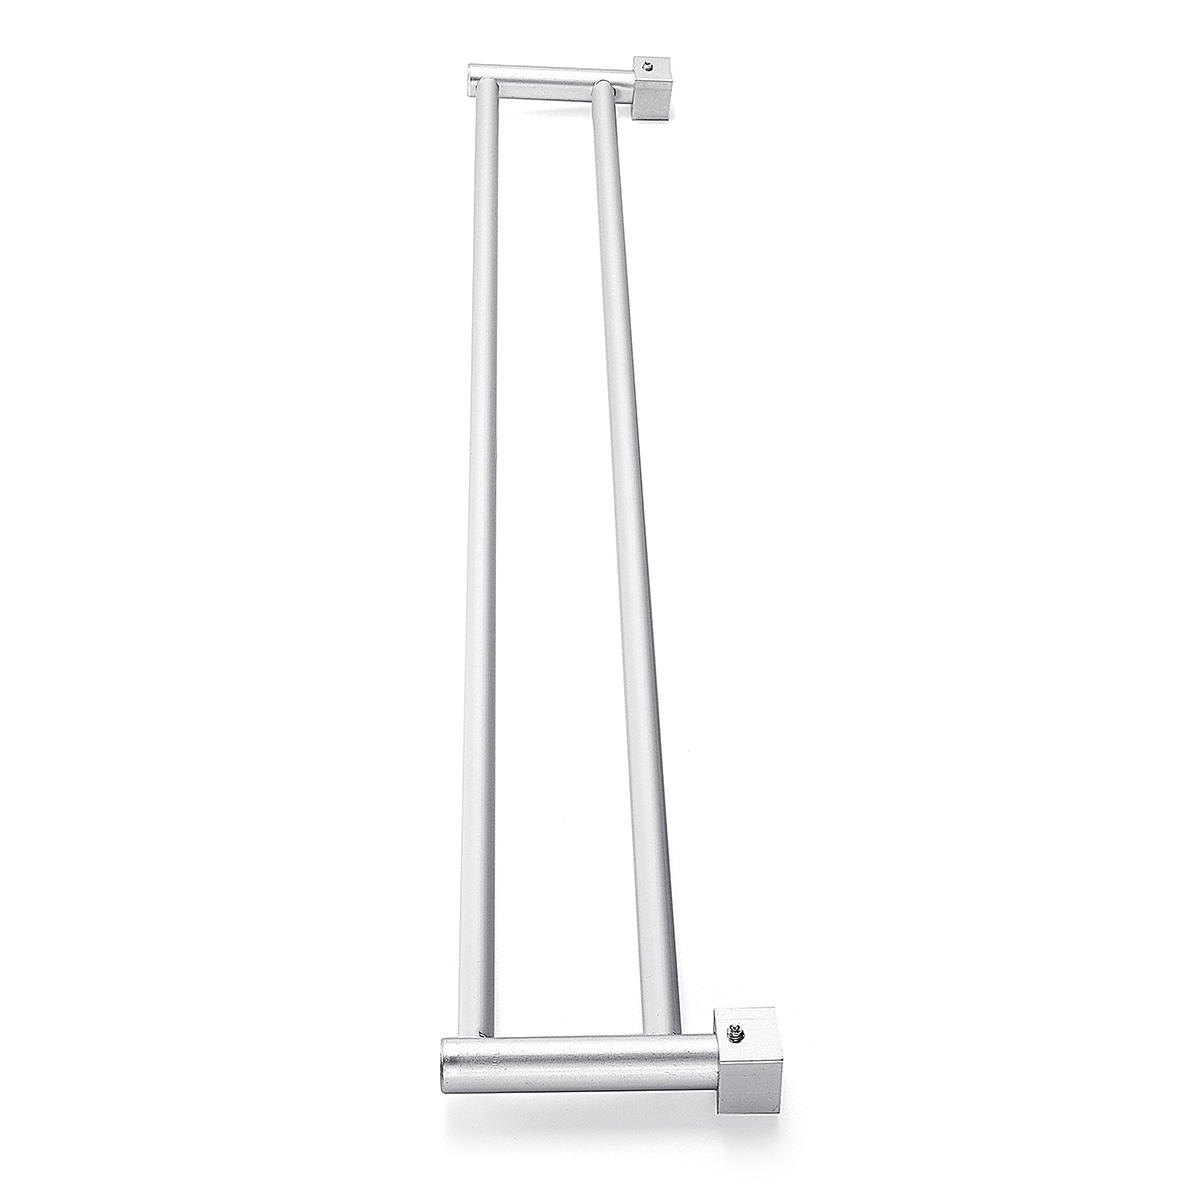 Bathroom Double Towel Rail Rack 2 Bar Space Aluminum